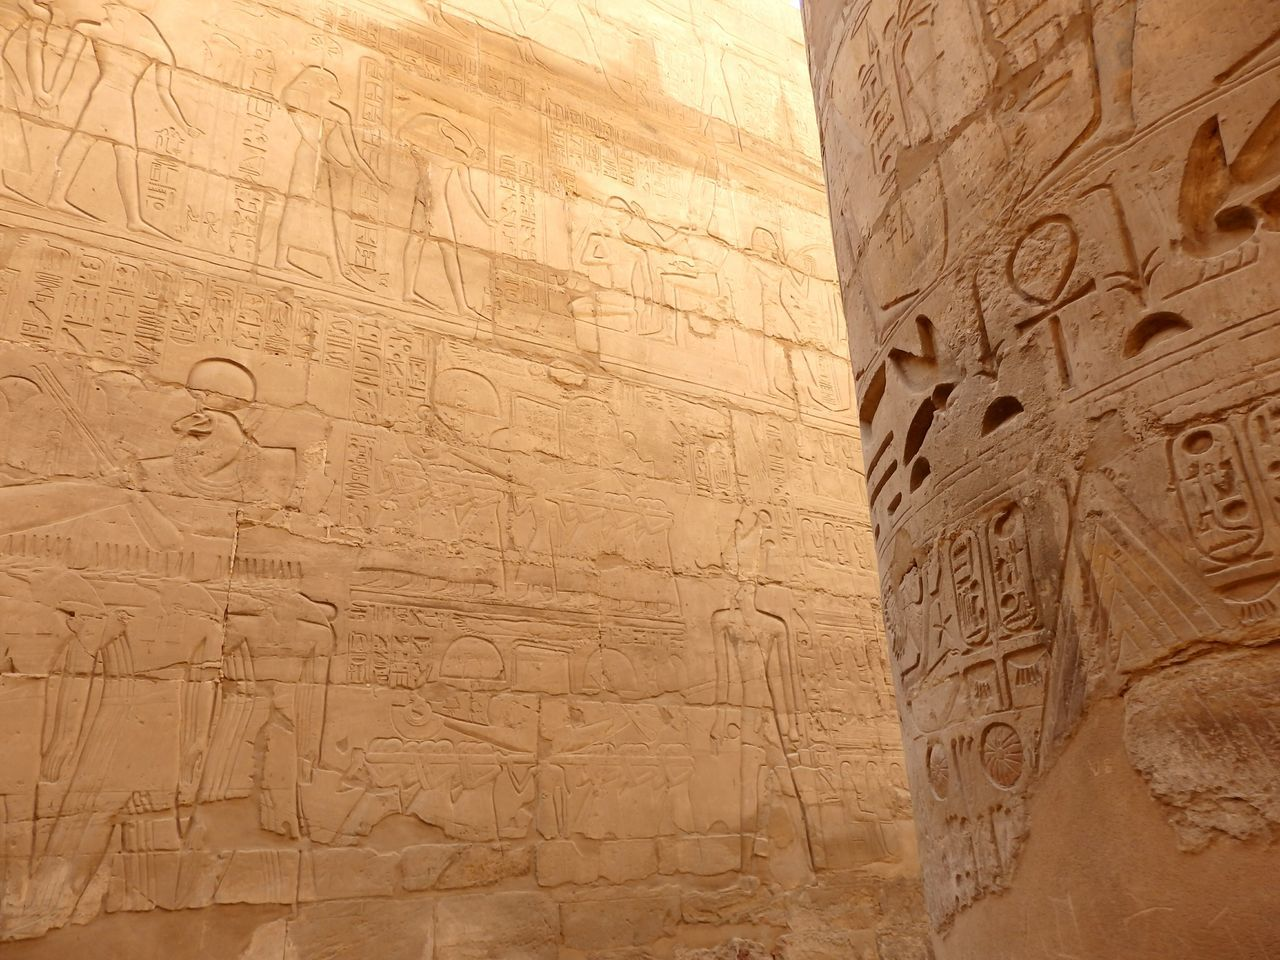 Hieroglyphs in the Karnak Temple Hieroglyphics Hieroglyphs Karnak Temple Luxor Historical Building Historical Monuments Old But Awesome EyeEm Best Shots Eye4photography  EyeEm Gallery Traveling Travel Magical Places The EyeEm Facebook Cover Challenge Key Of Life Pharaoh Egypt Old Writing